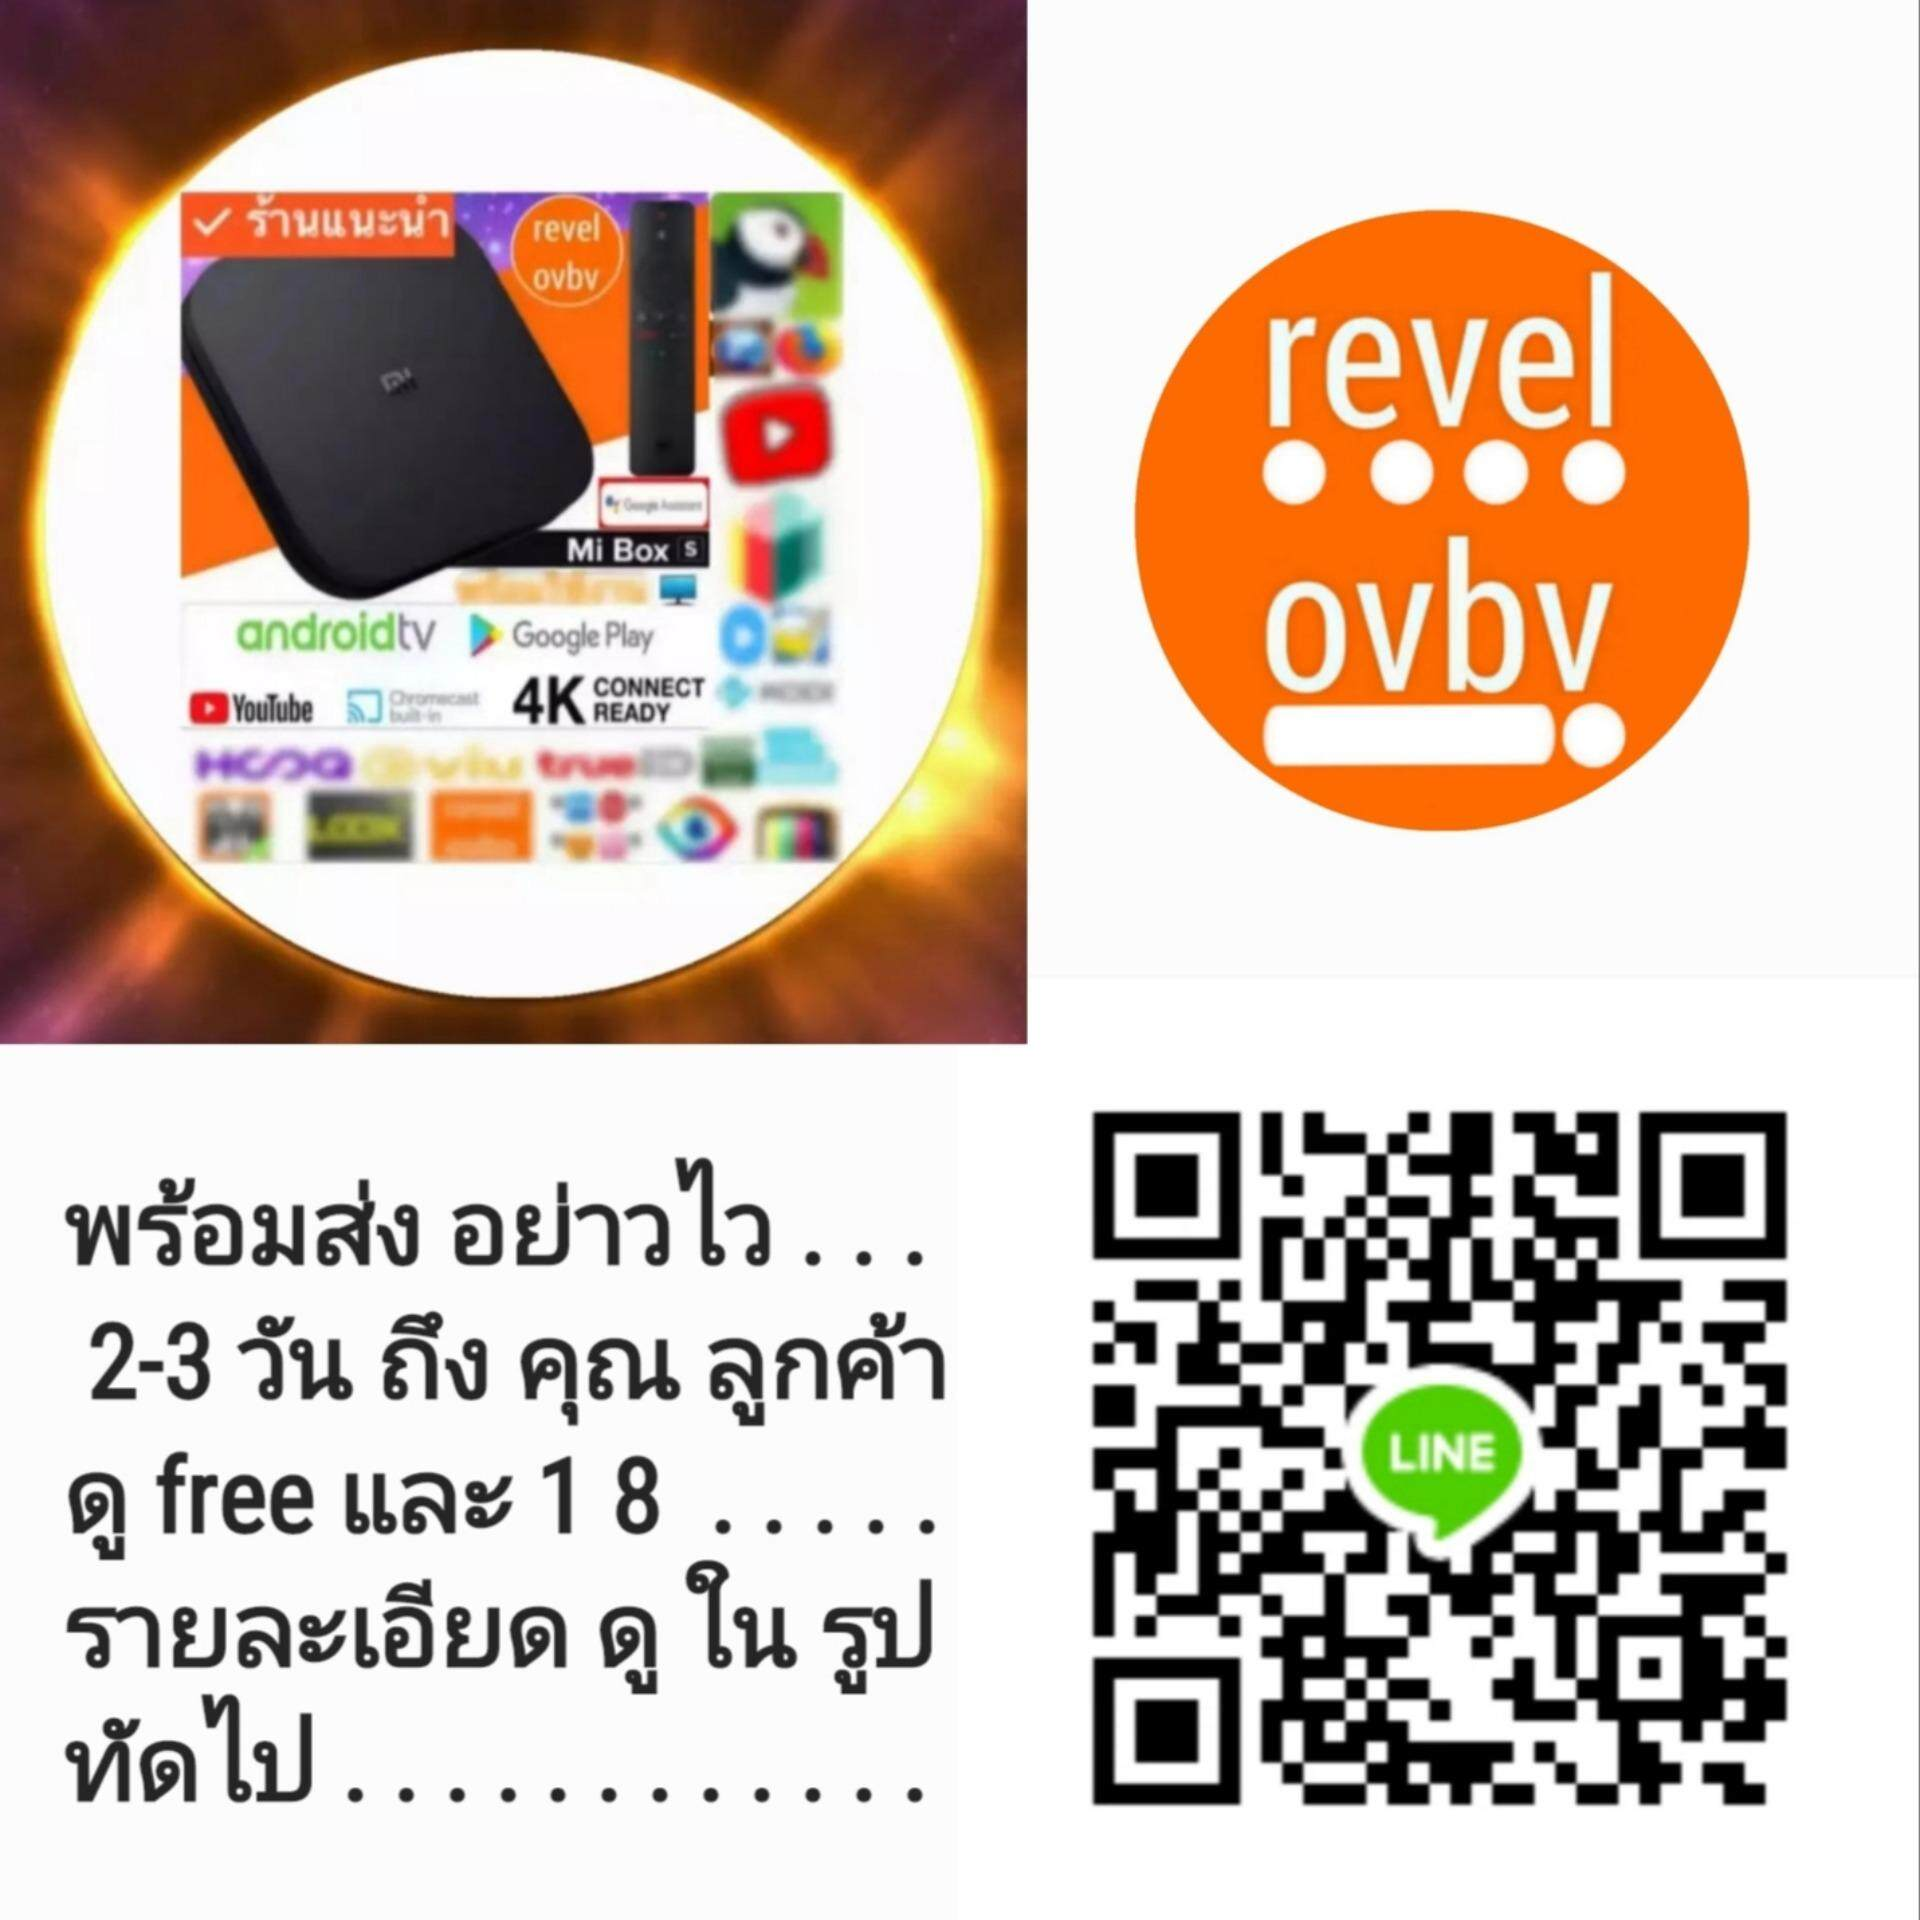 ยี่ห้อนี้ดีไหม  ตราด Mi BOX 2019 Xiaomi MI BOX Streaming Media Player Android TV 8.1 Quad Core 64Bit Set-top Box support Yotube Nexfilx 4K Vedio DTS and Dolby